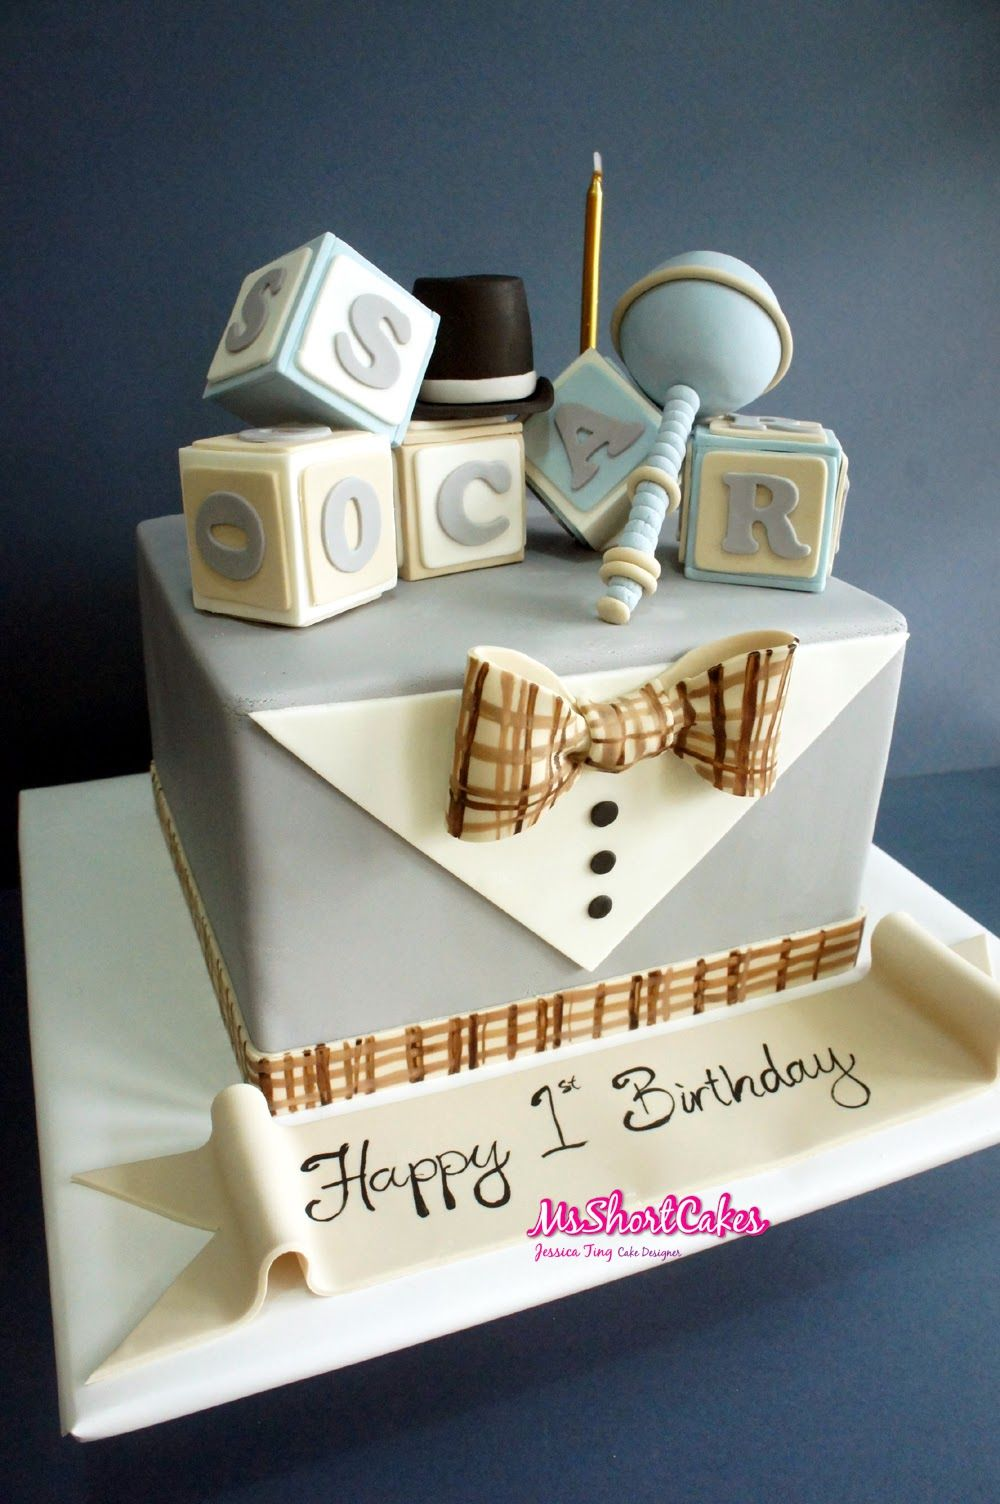 Cake Ideas Aashvik turns ONE Pinterest Cake Shower cakes and